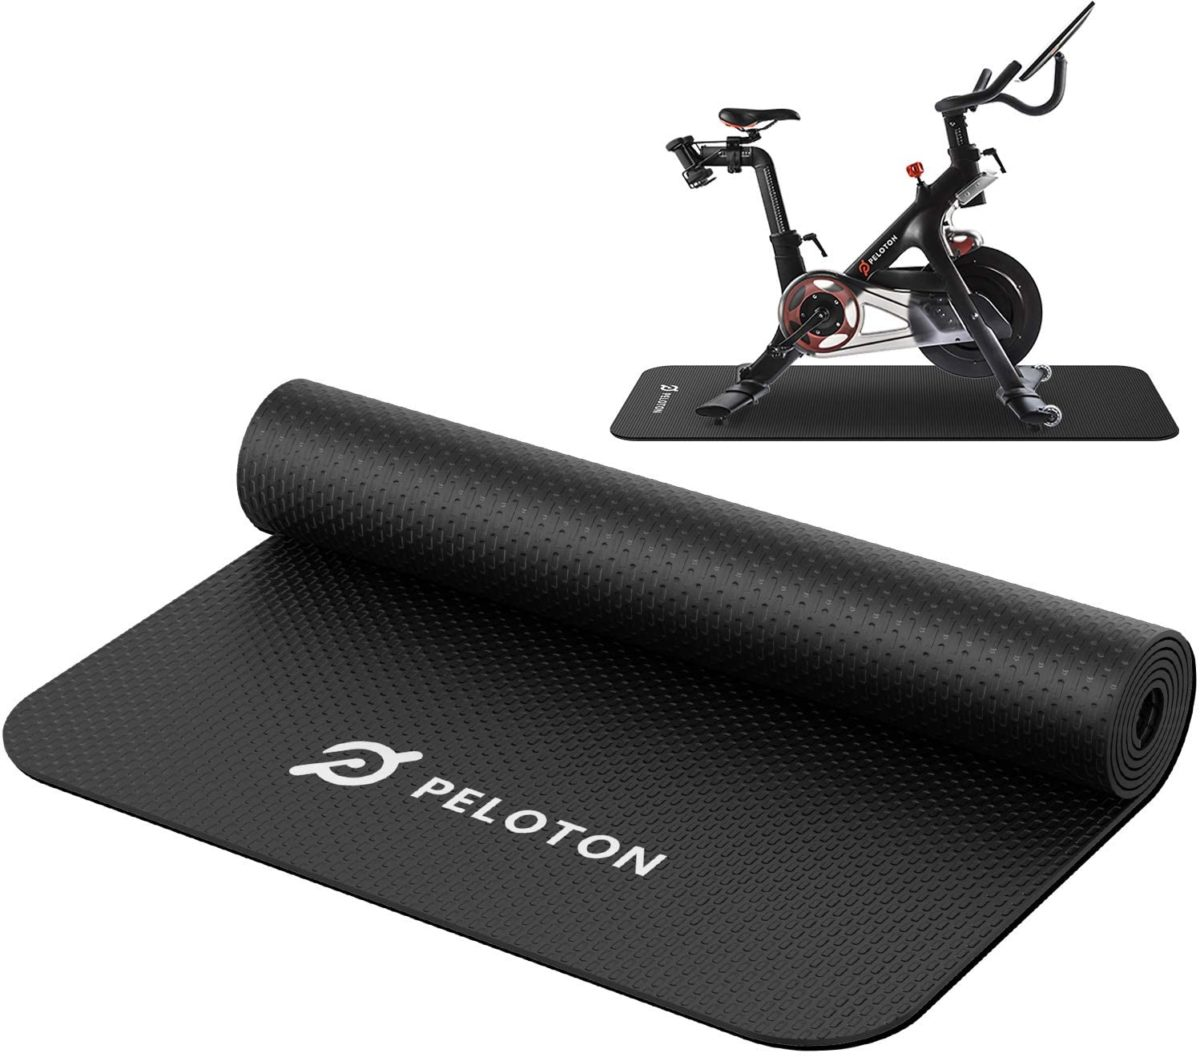 at-home workout equipment you can score for under $250